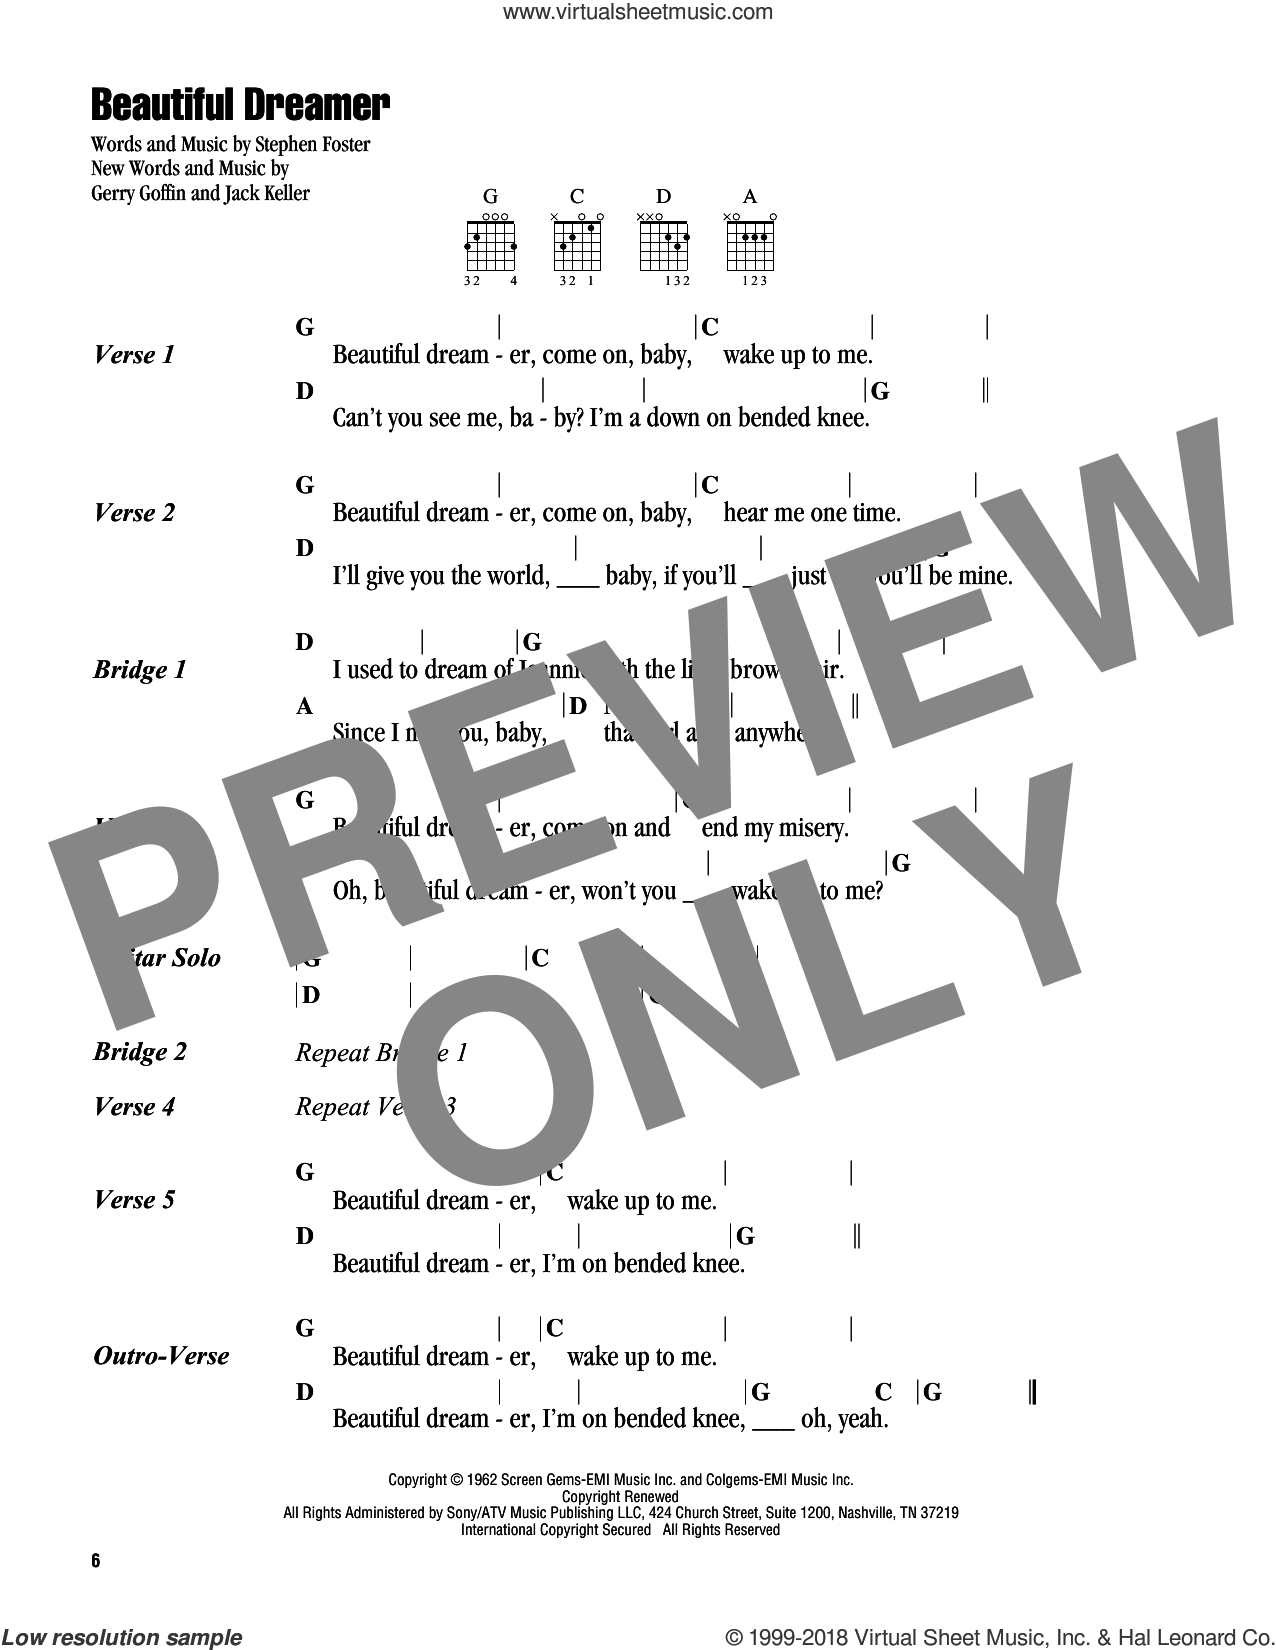 Beautiful Dreamer sheet music for guitar (chords) by The Beatles, Gerry Goffin, Jack Keller and Stephen Foster, intermediate skill level